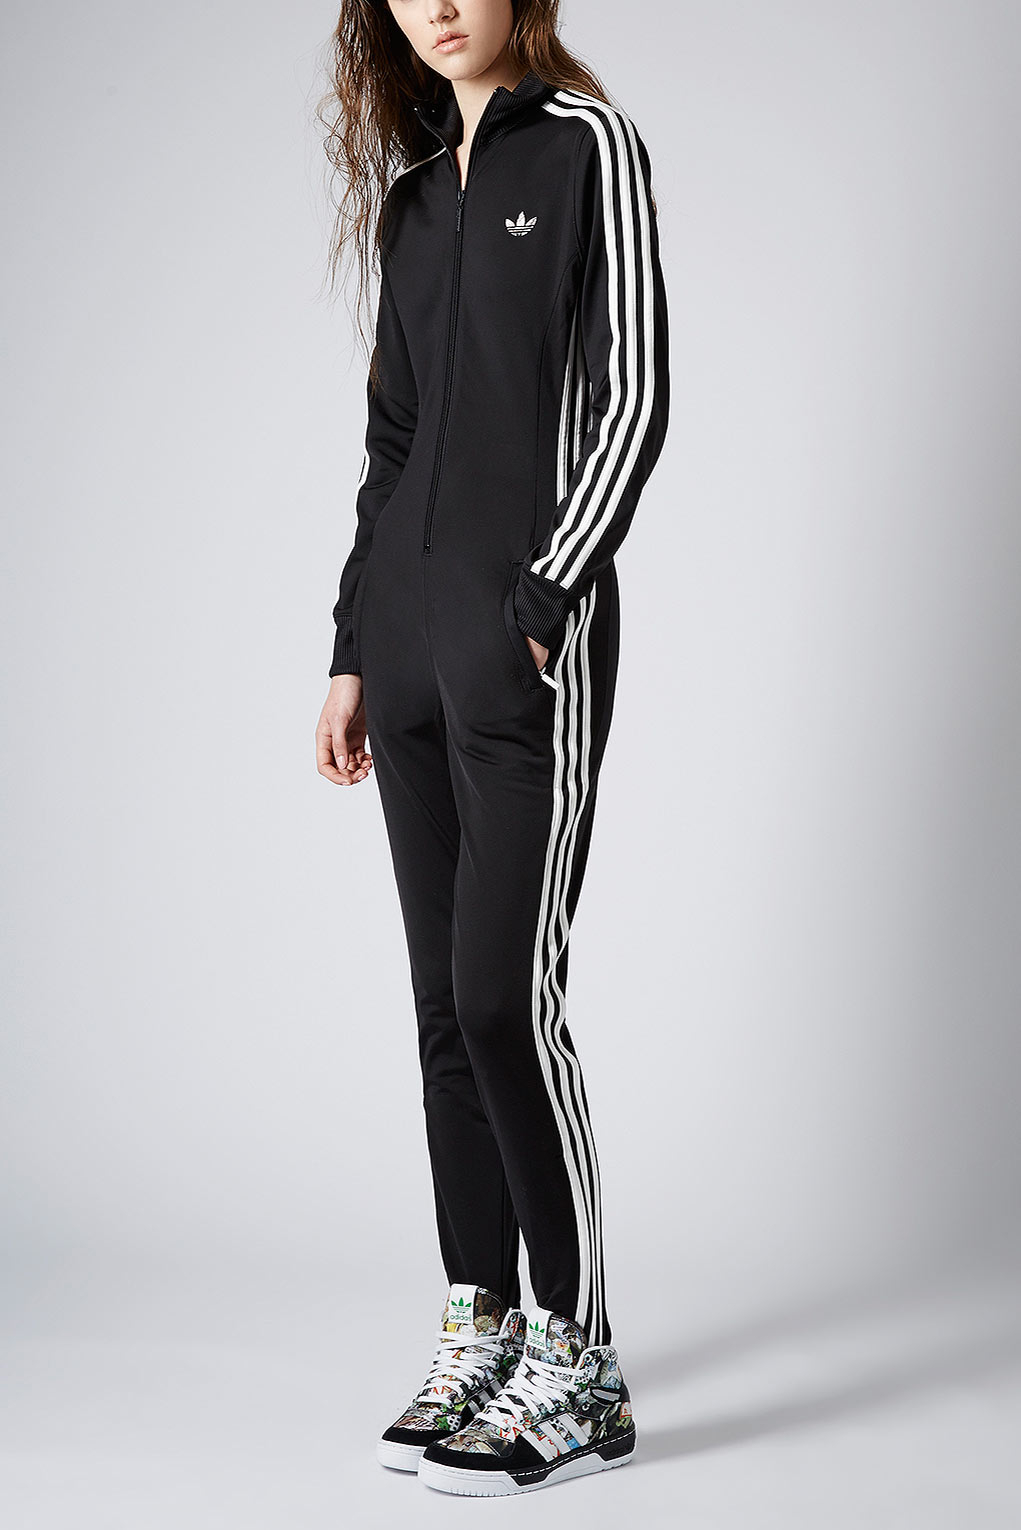 New I Also Love The Classic, Oldschool Adidas Track Suits That Everyone From Kim Kardashian  Additionally, We Will See Sleek Mens Styles On Womens Silhouettes Describe Your Personal Style In Five